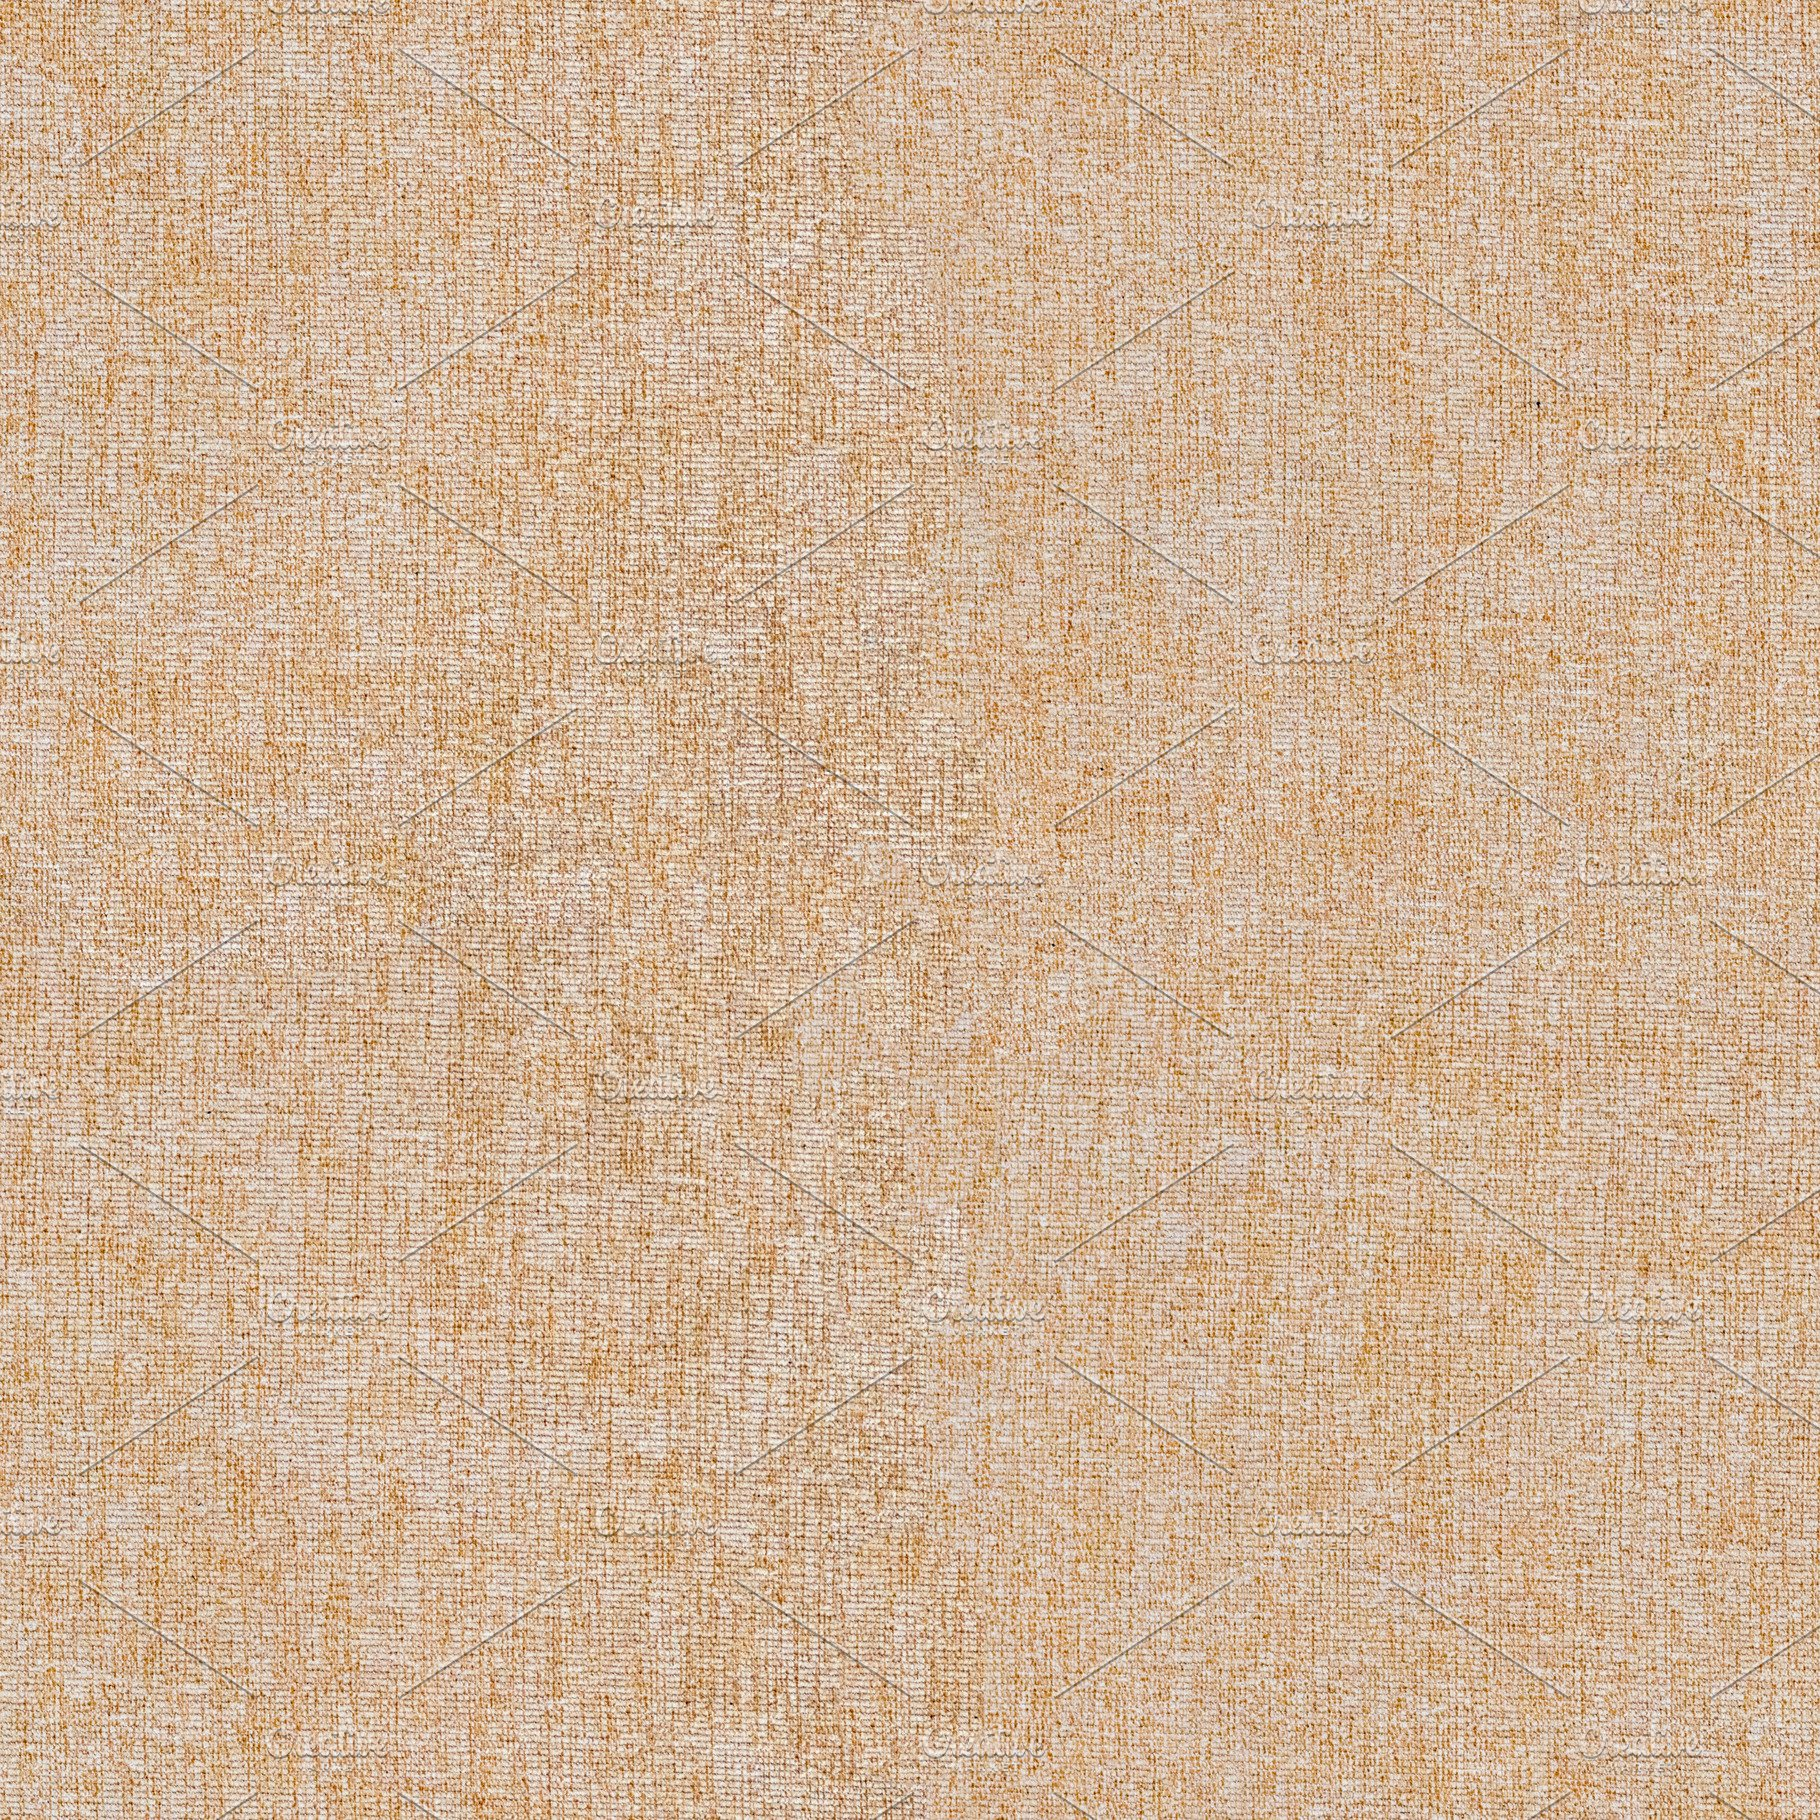 fabric seamless texture | High-Quality Abstract Stock Photos ...